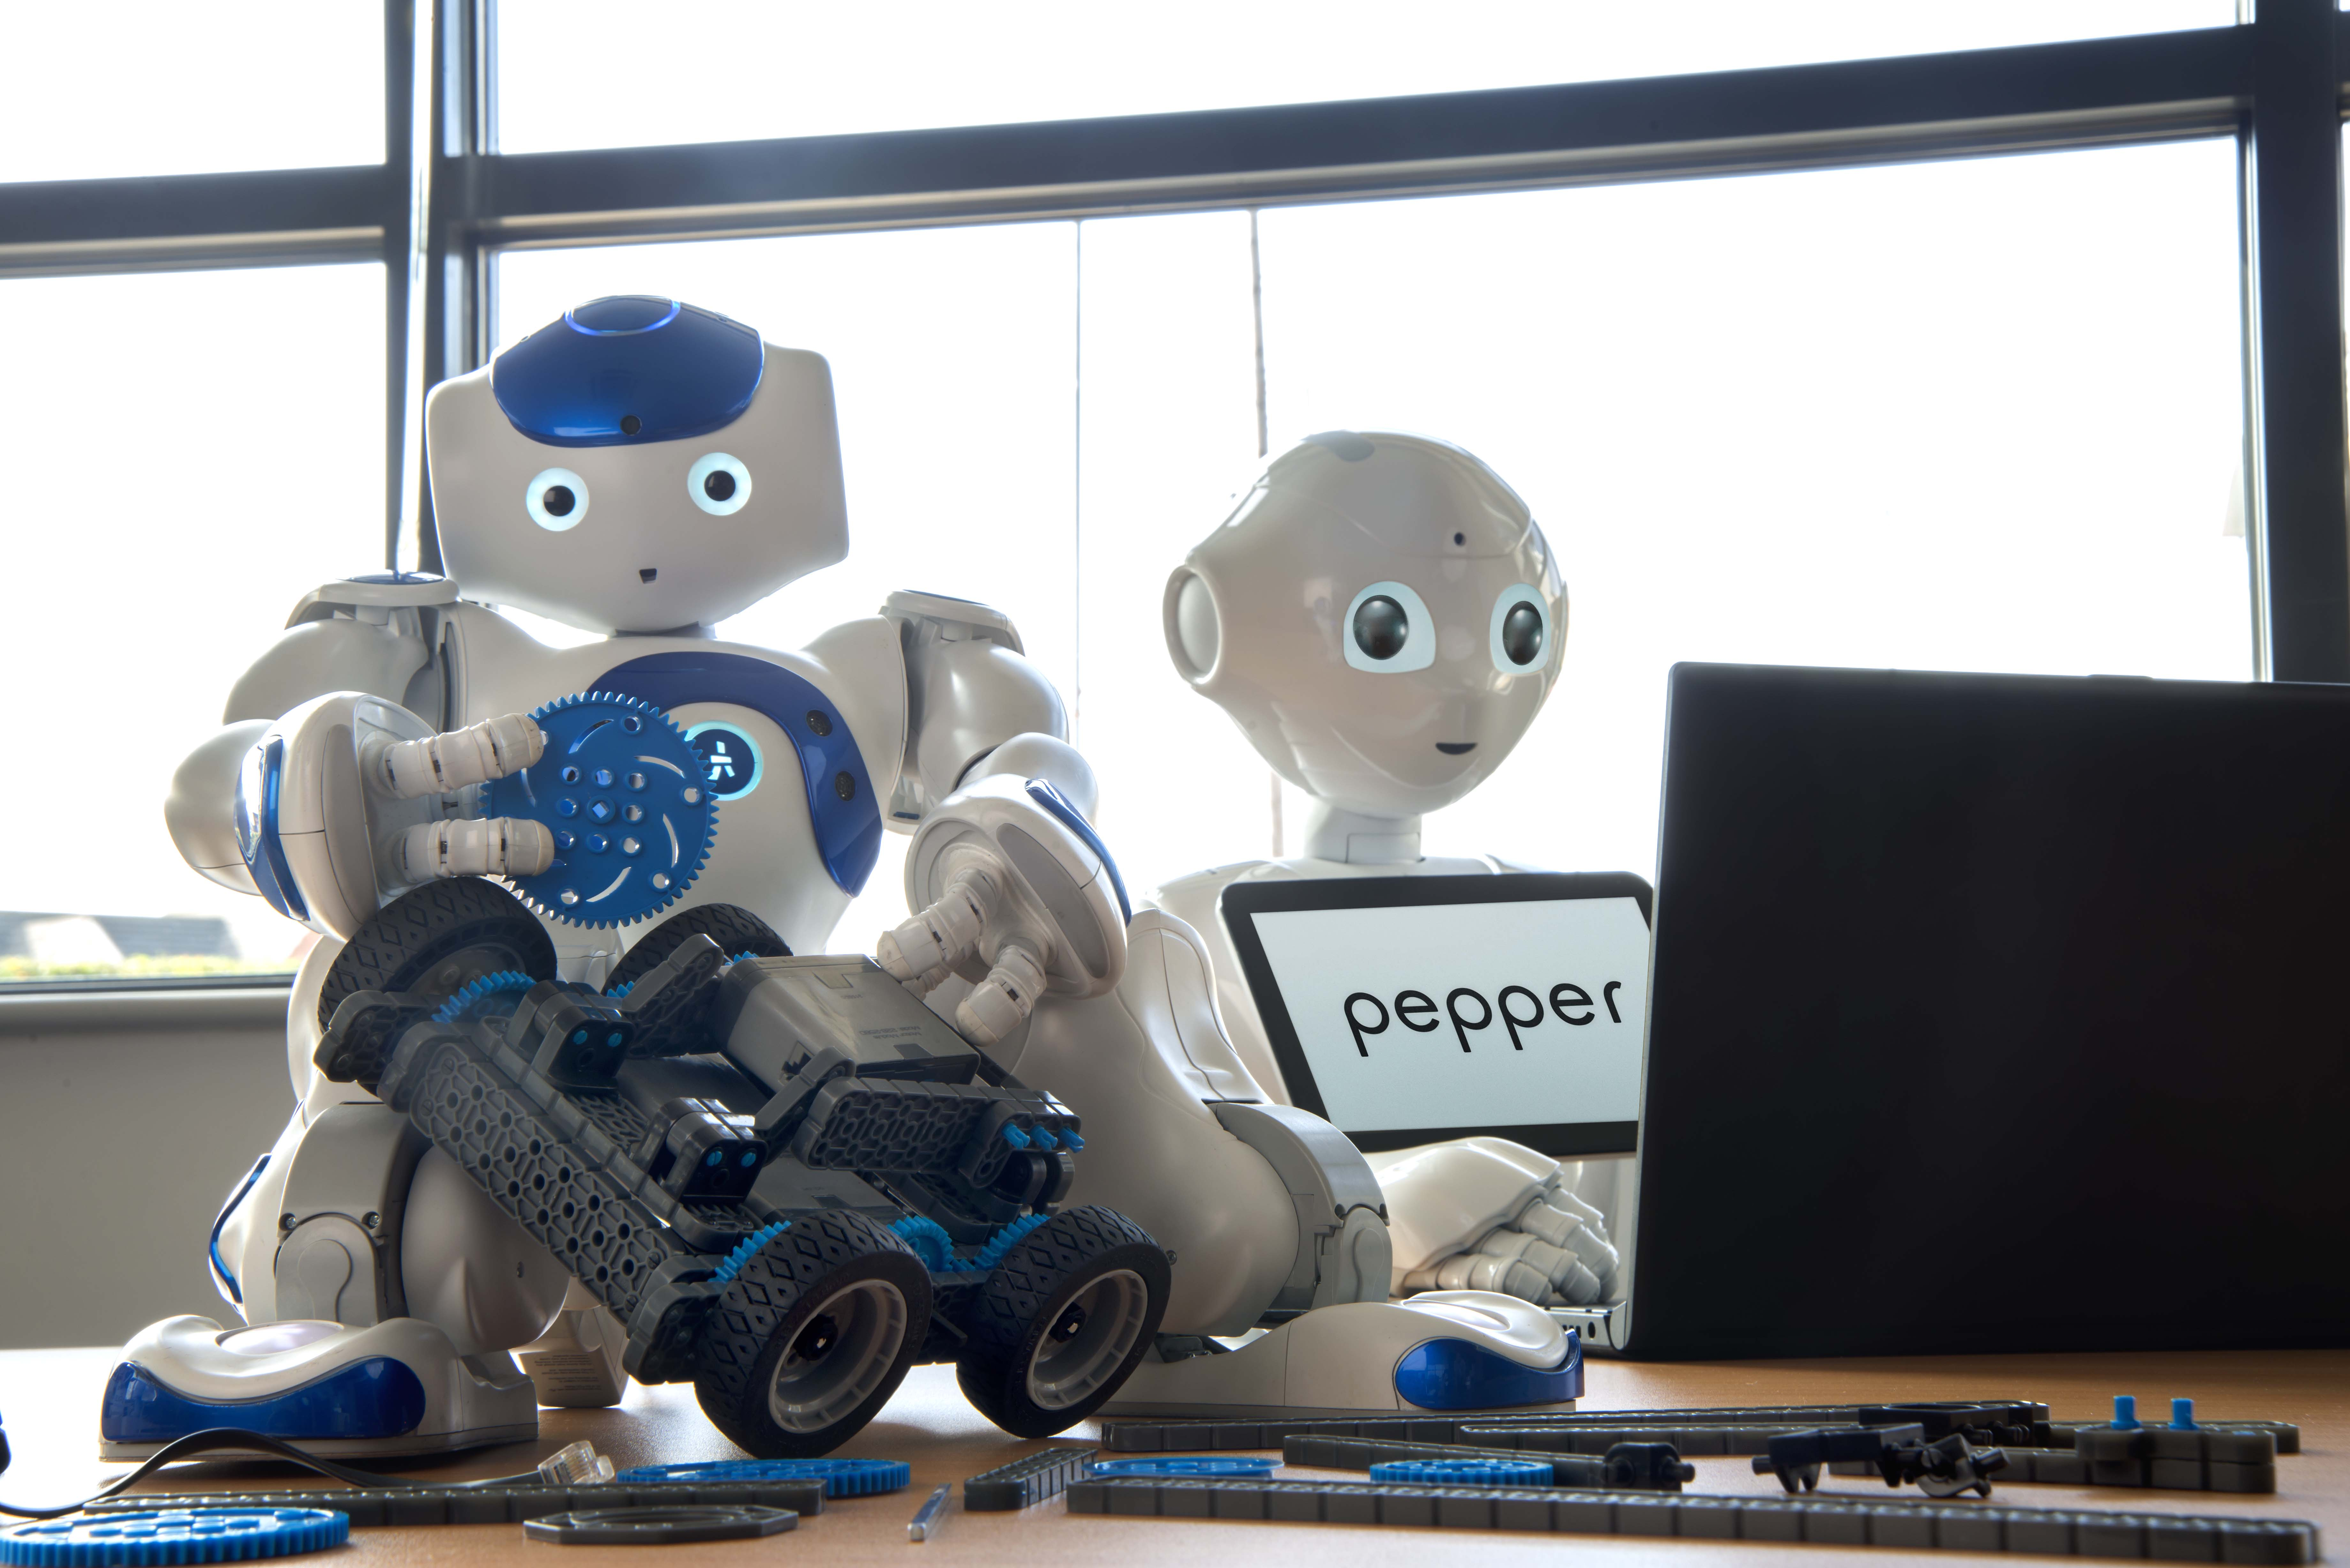 Pepper and NAO